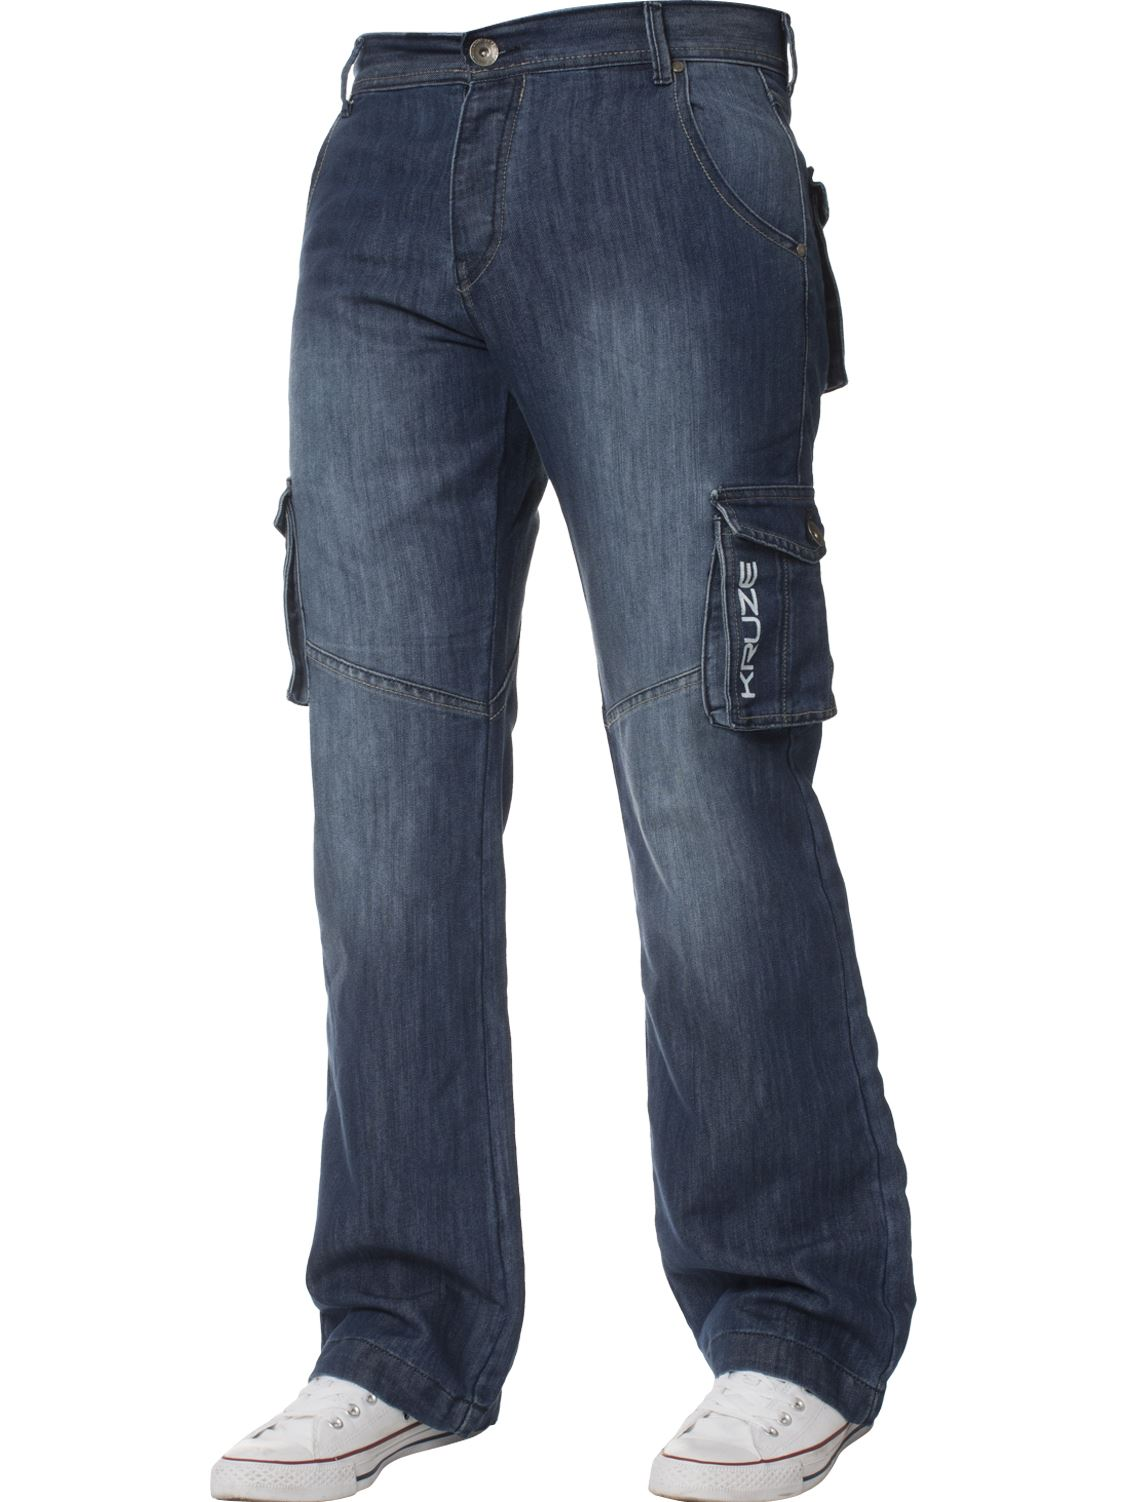 Mens-Cargo-Combat-Trousers-Jeans-Heavy-Duty-Work-Casual-Pants-Big-Tall-All-Sizes thumbnail 28